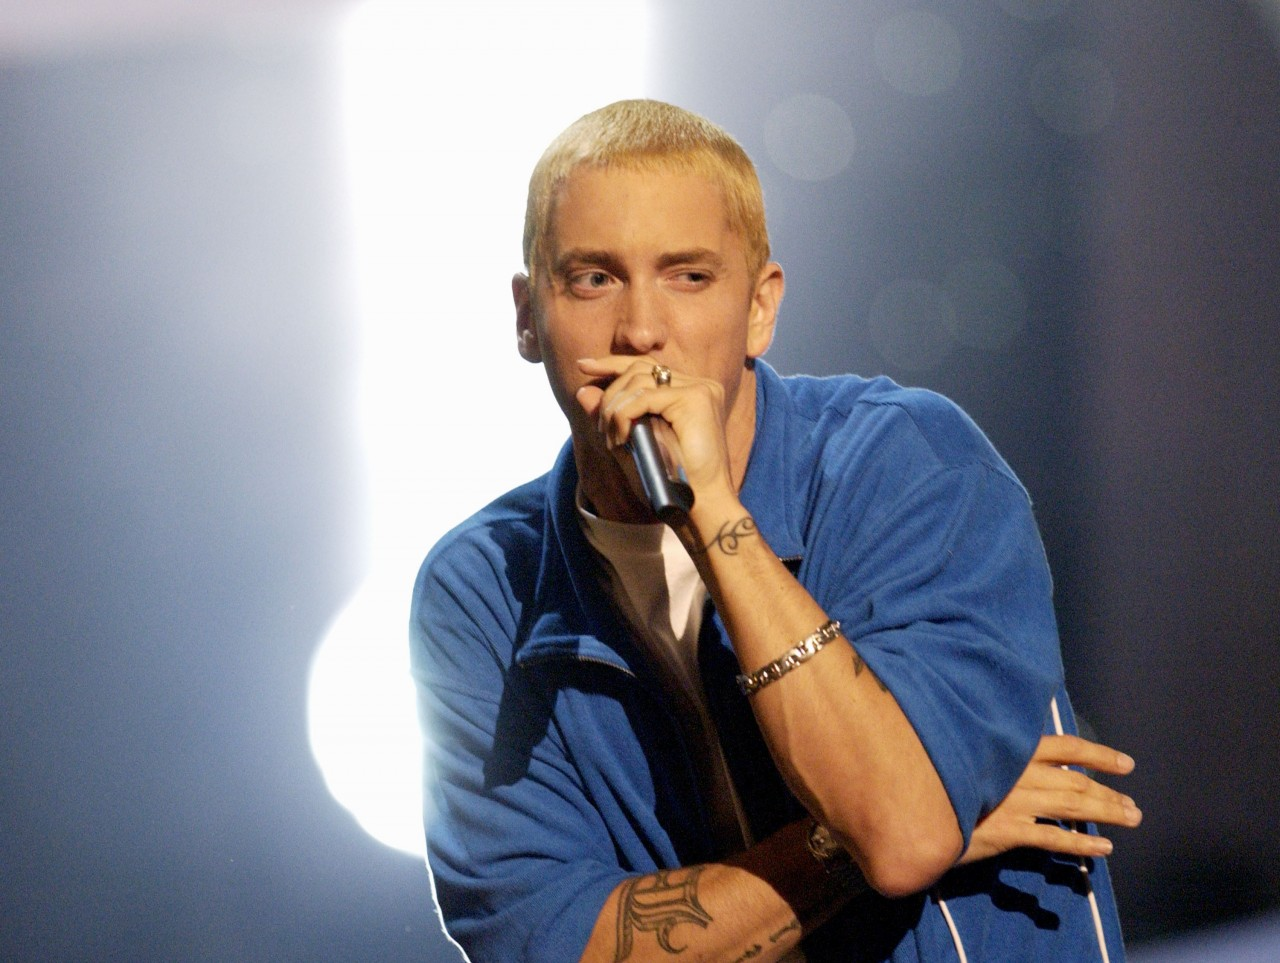 eminem research paper Eminem research paper research paper eminem 1931 words jul 20, on my clarity just feb 9 6 super fun stop motion animation turns paper creative productivity.